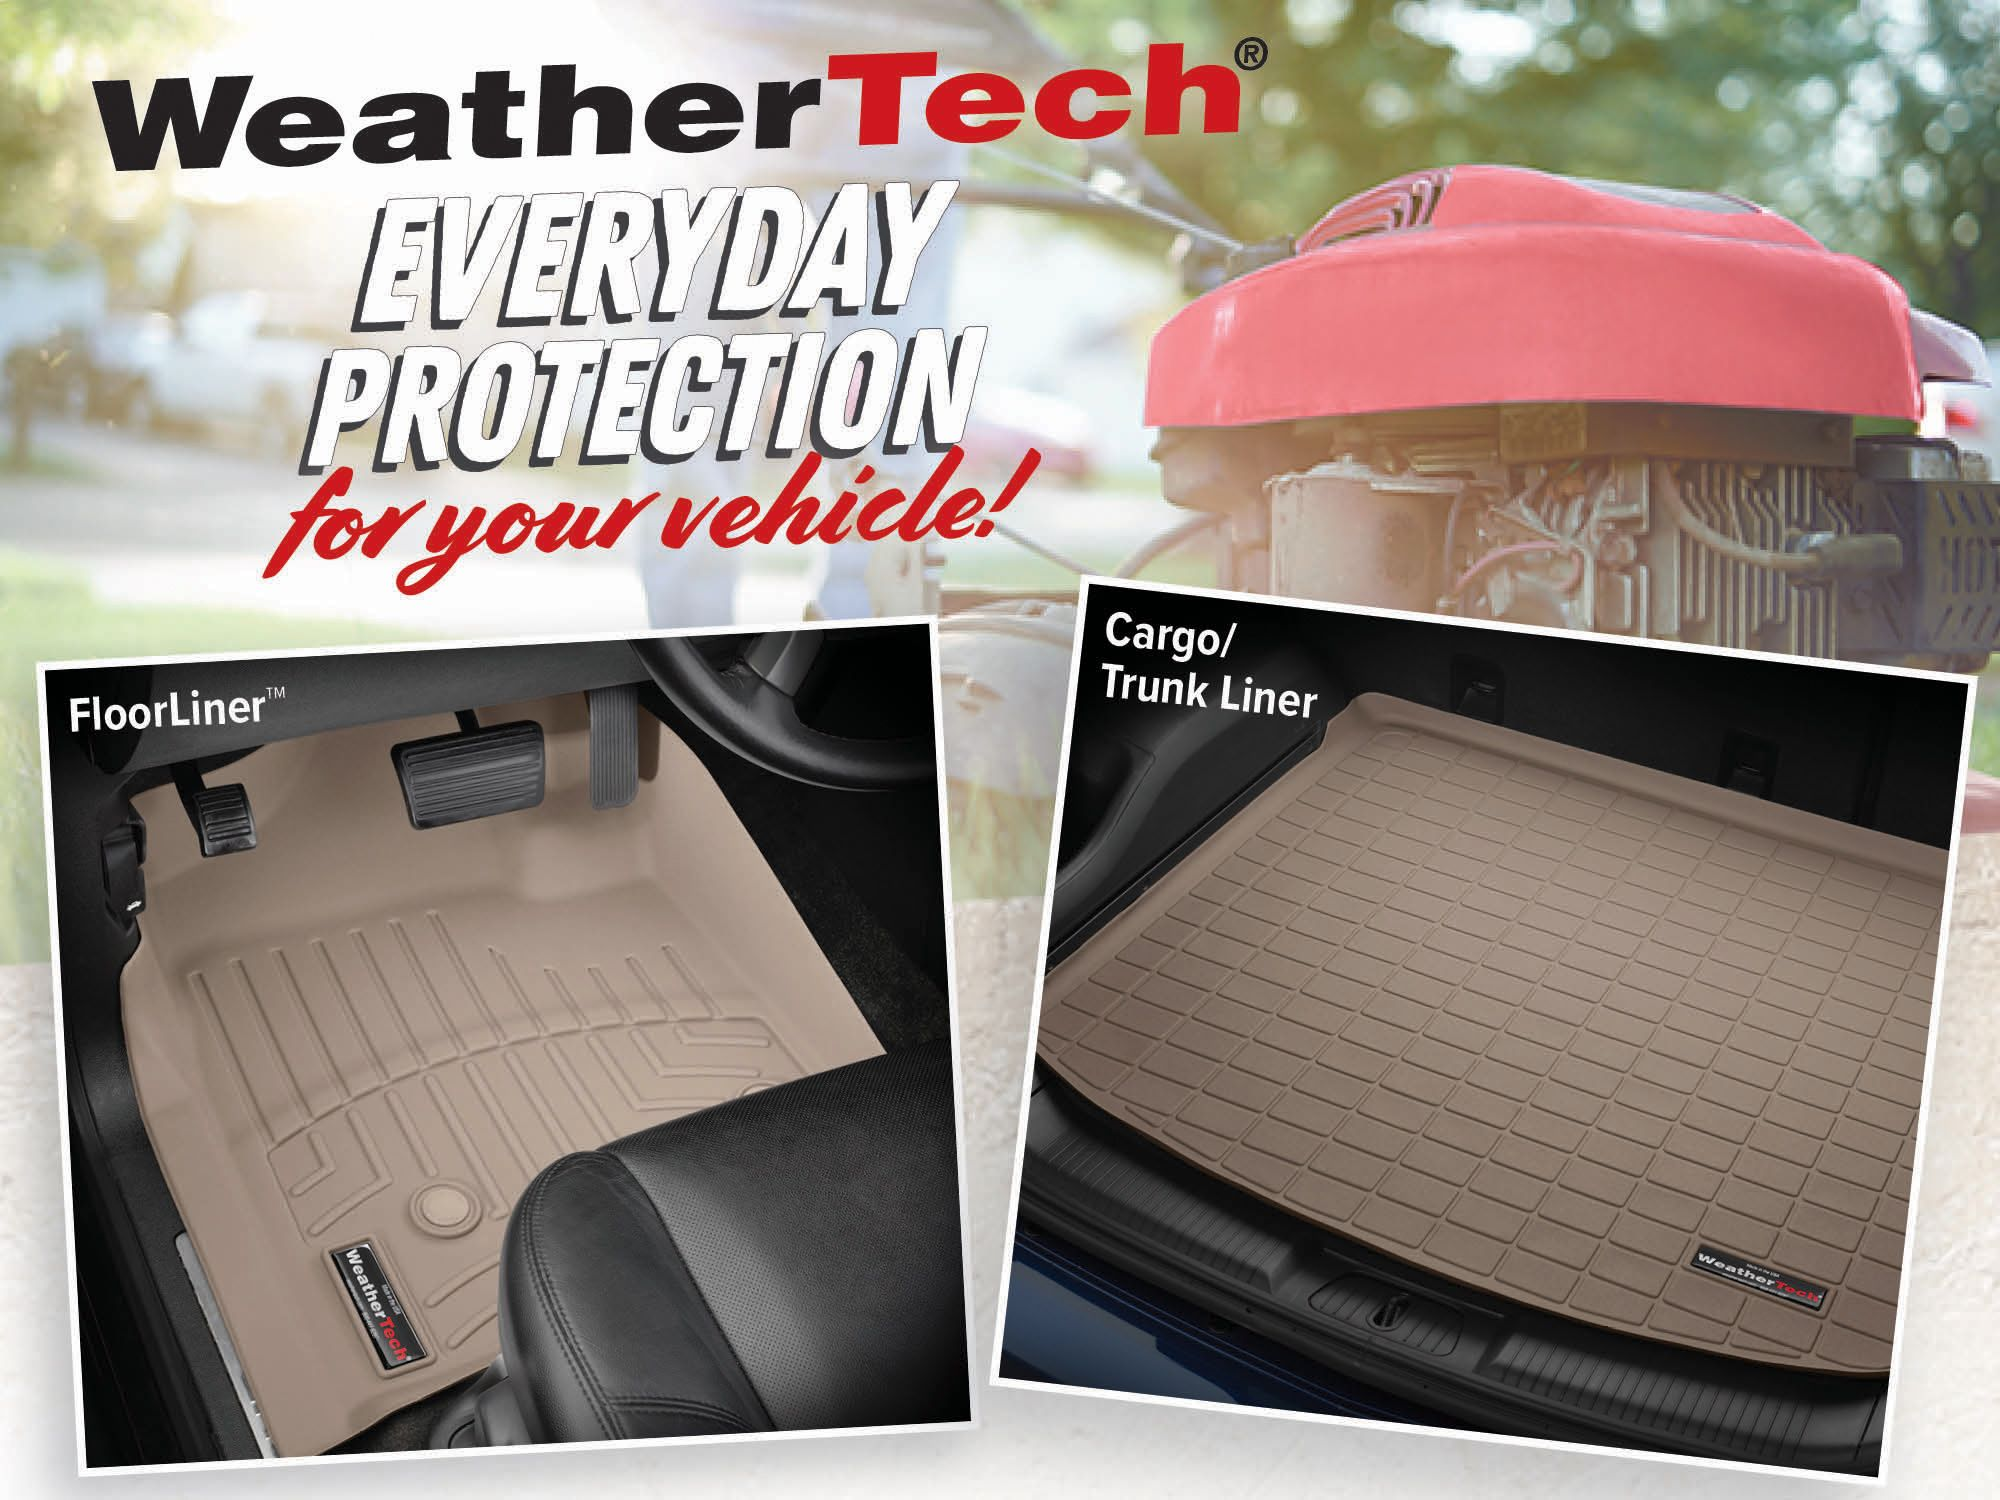 Get everyday protection for your vehicle at WeatherTech